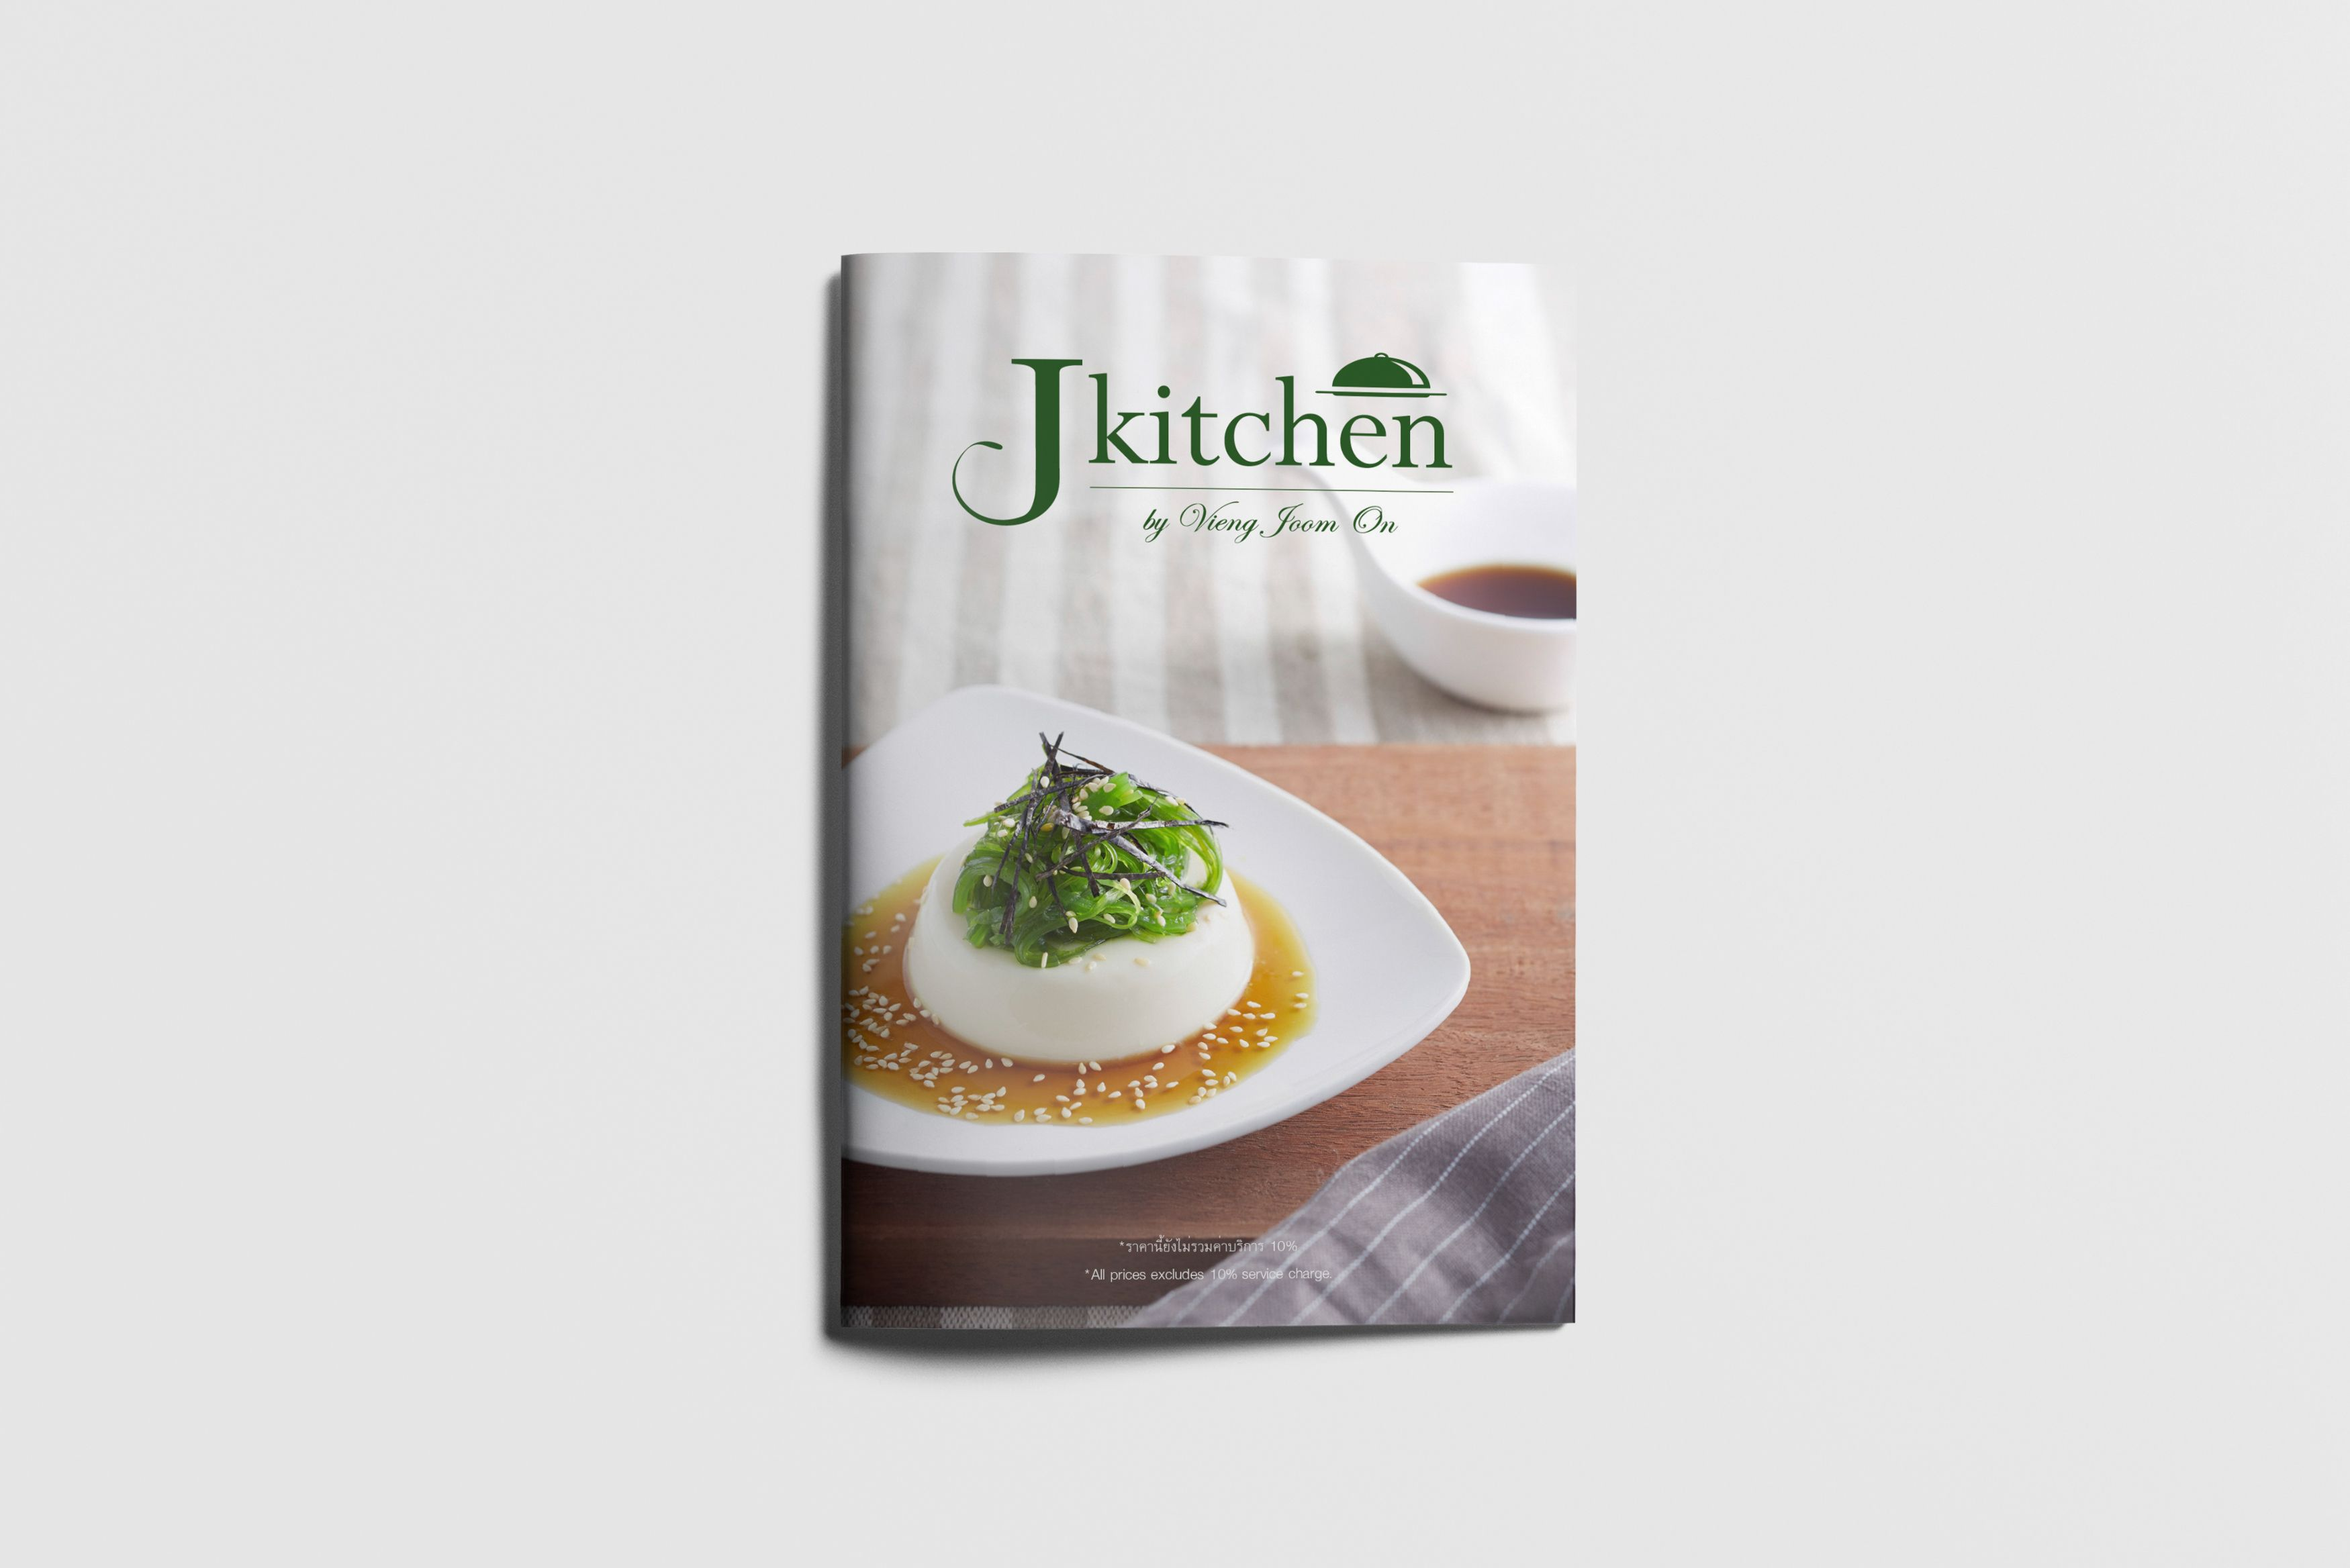 menu design for j kitchen by vieng joom on graphic design chiangmai thailand sabudbobstudio on j kitchen id=52583